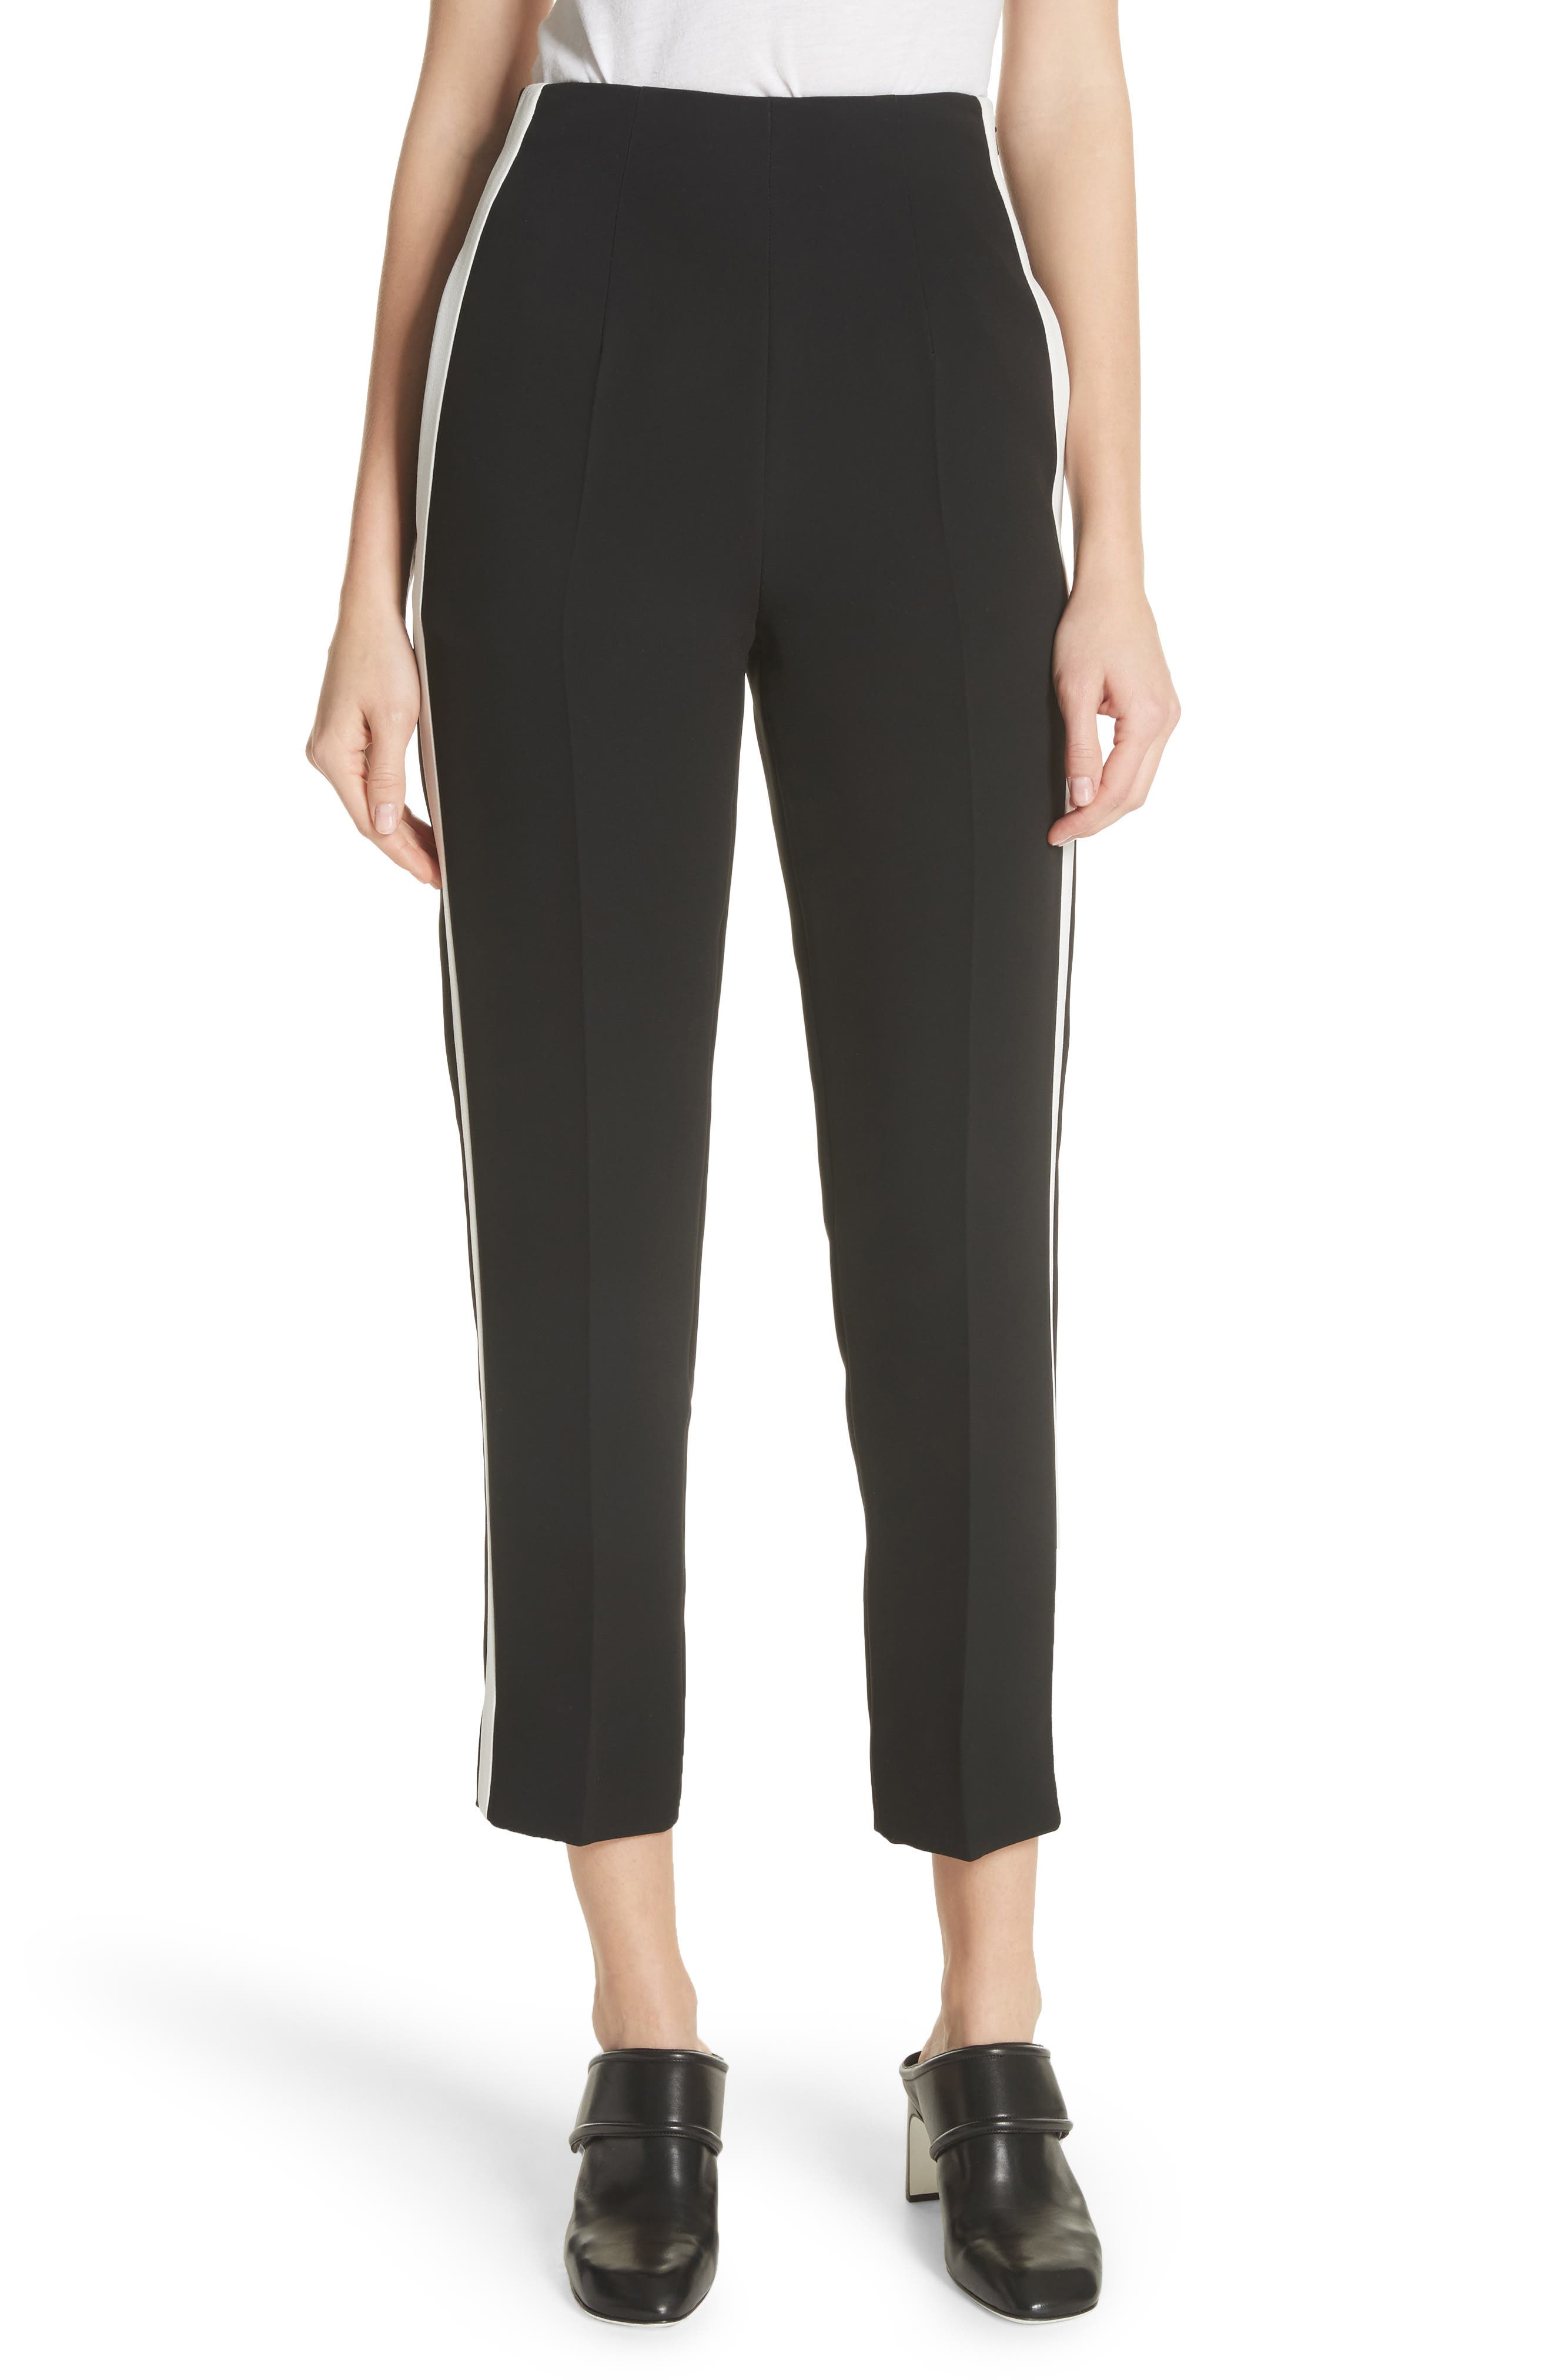 Elliot Side Stripe Pants,                             Main thumbnail 1, color,                             Black